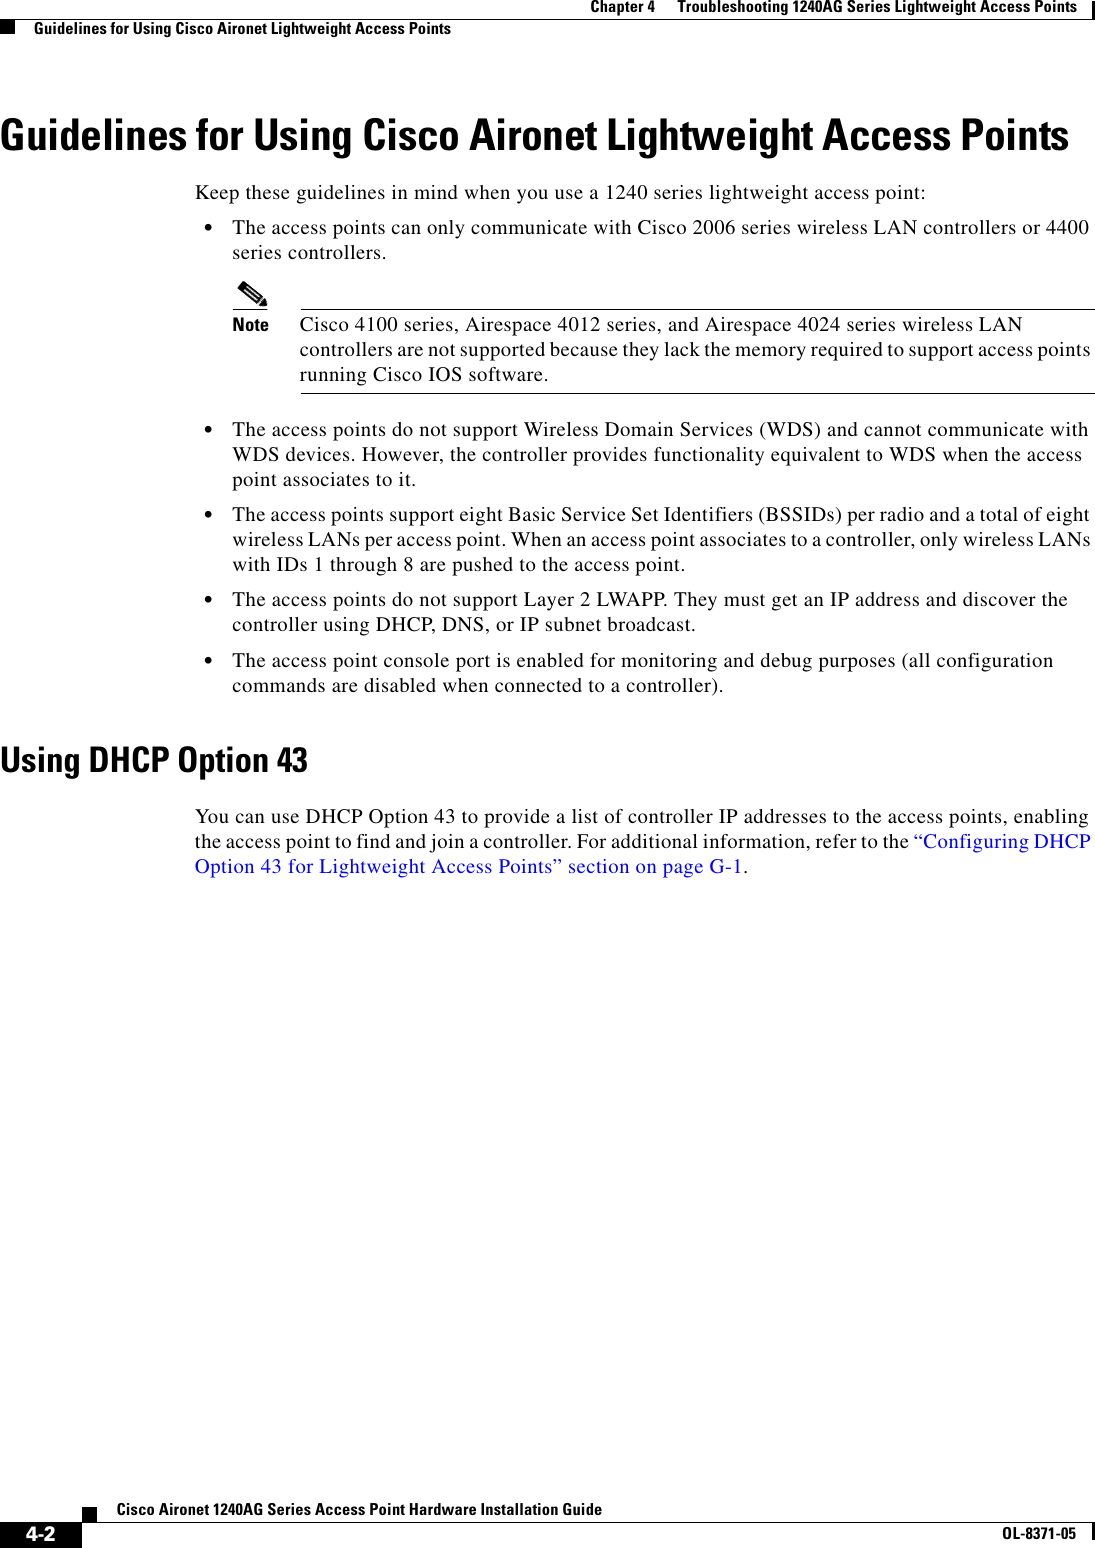 Cisco Systems 1240Ag Users Manual PDF For The Aironet Series